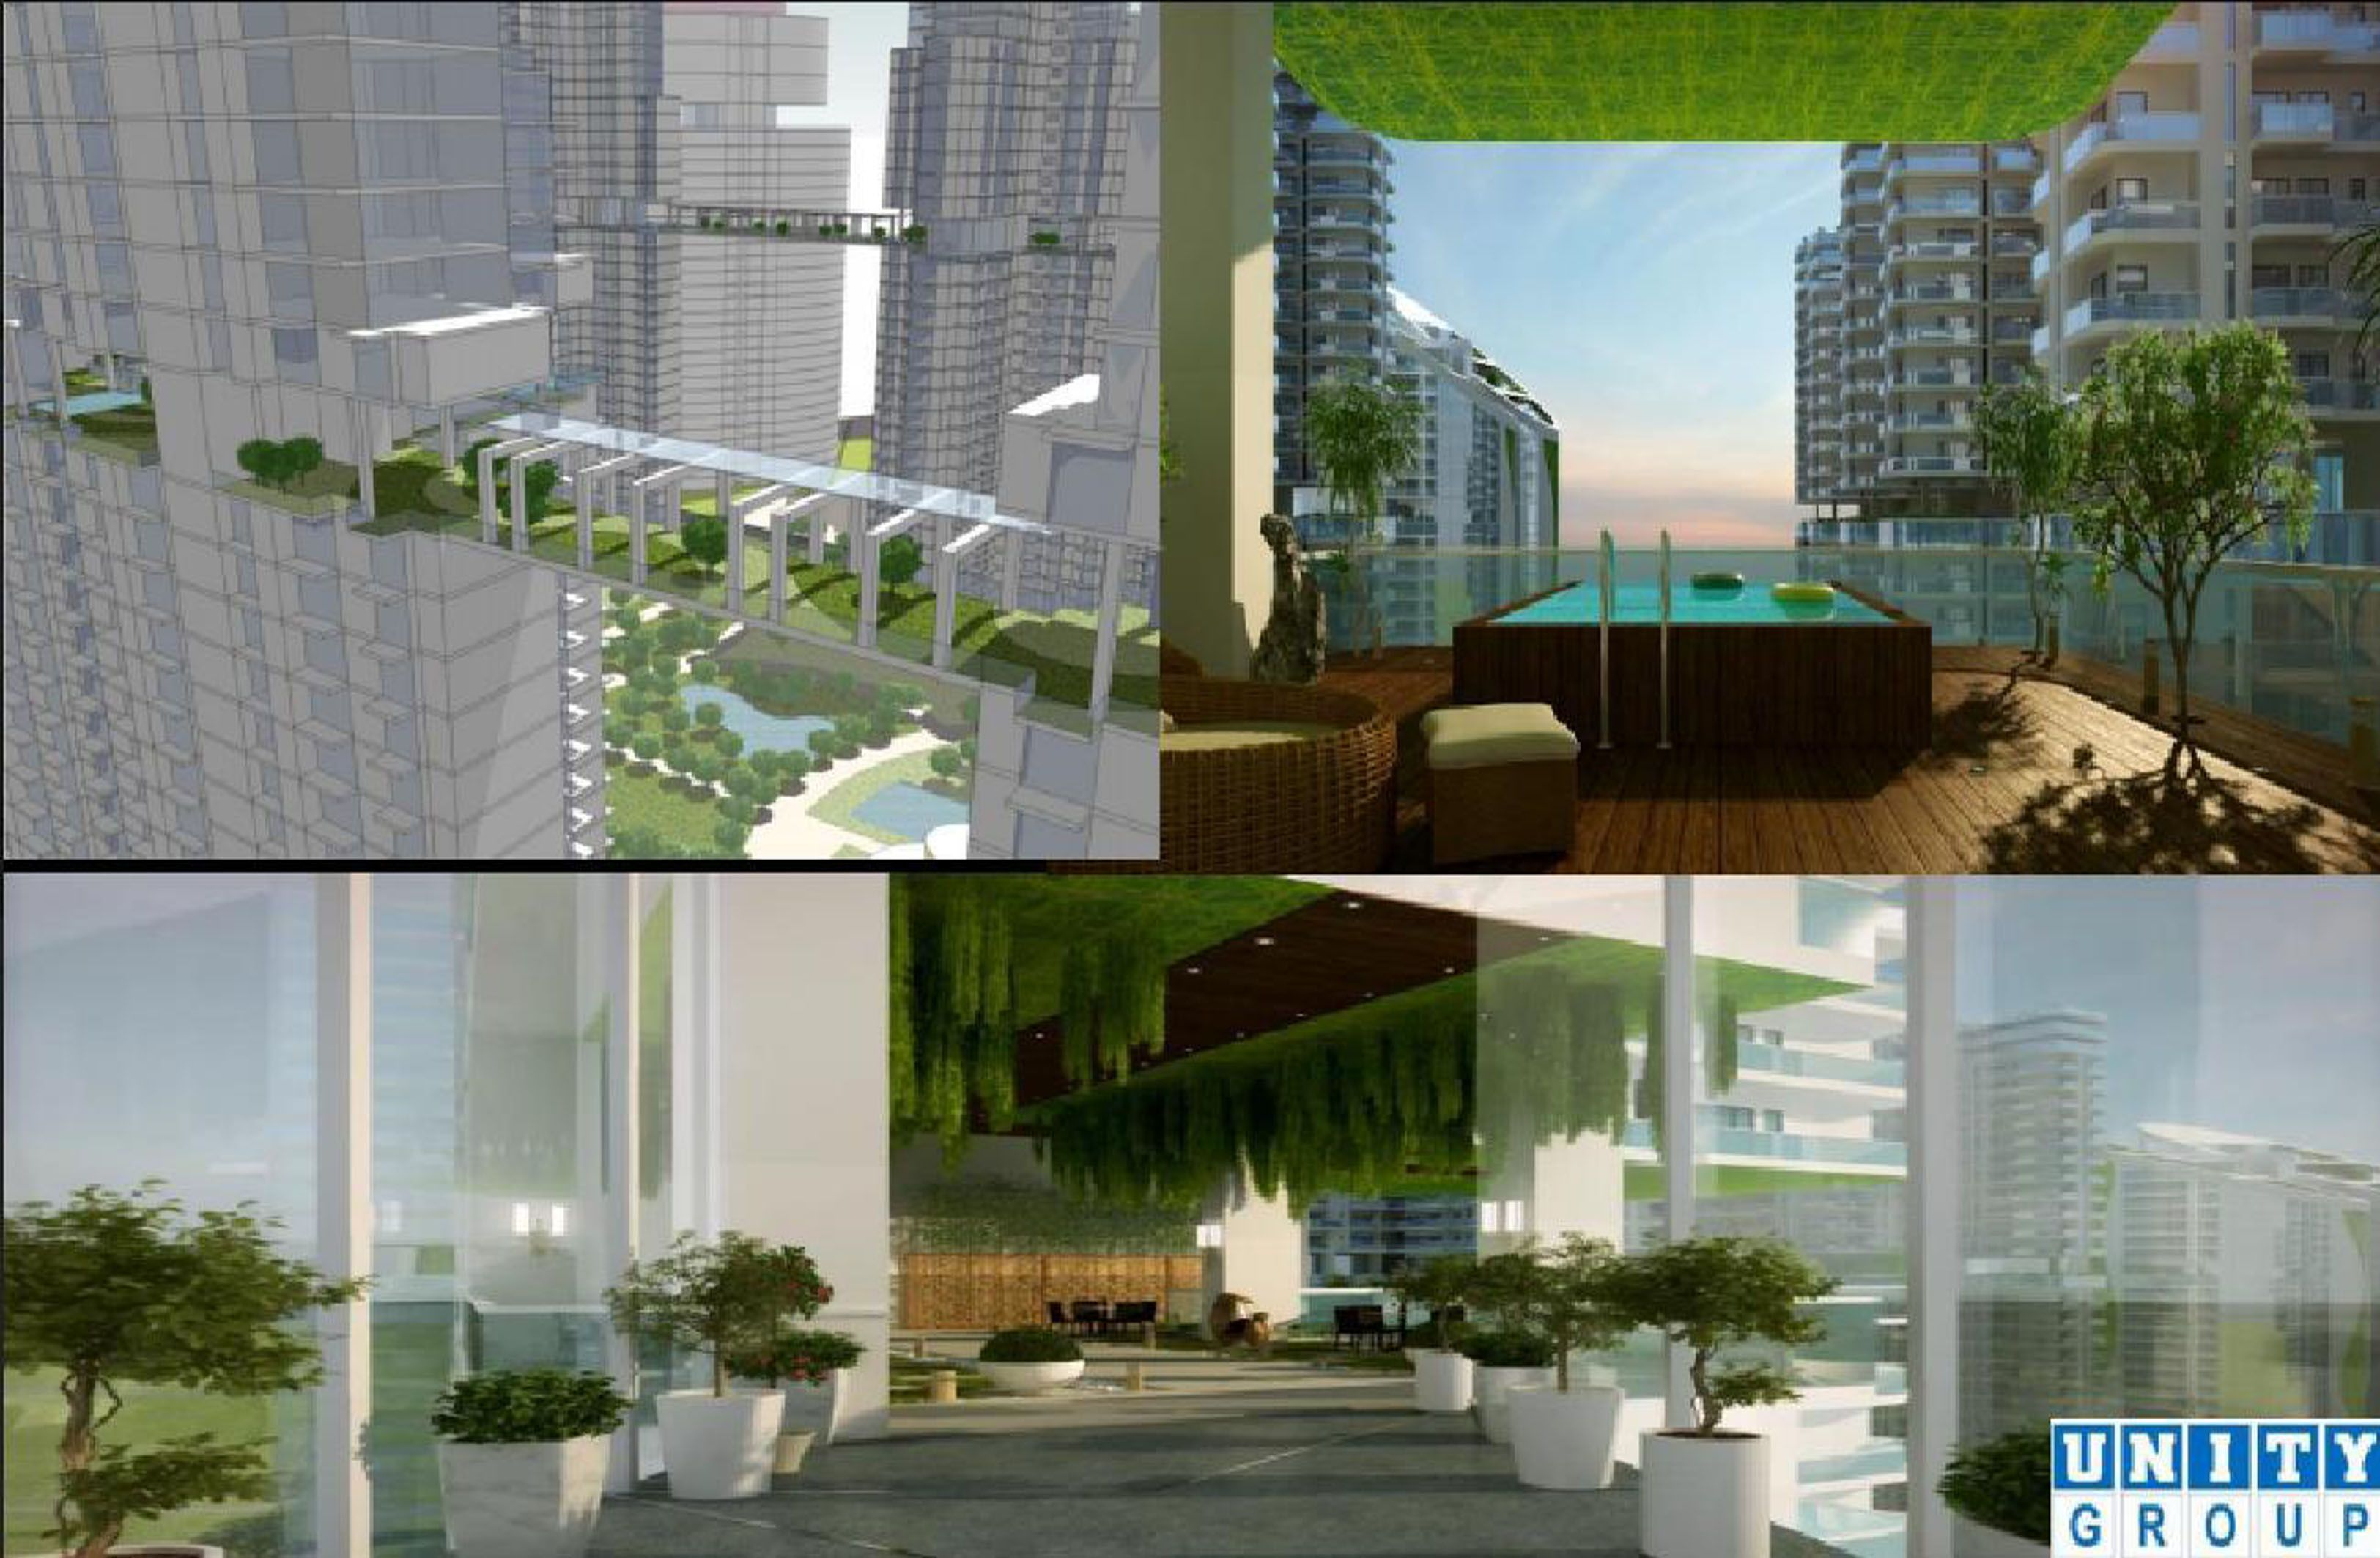 Unity Group New Project offers 3 BHK and 4 BHK apartments sizes ranging from 2400 to 3400 sq ft. Unity New Residential Project connectivity with major effluent areas of DELHI like Connaught Place, Karol Bagh, Chandni Chowk, Kamla Nagar, It has great investment opportunity in Delhi, India